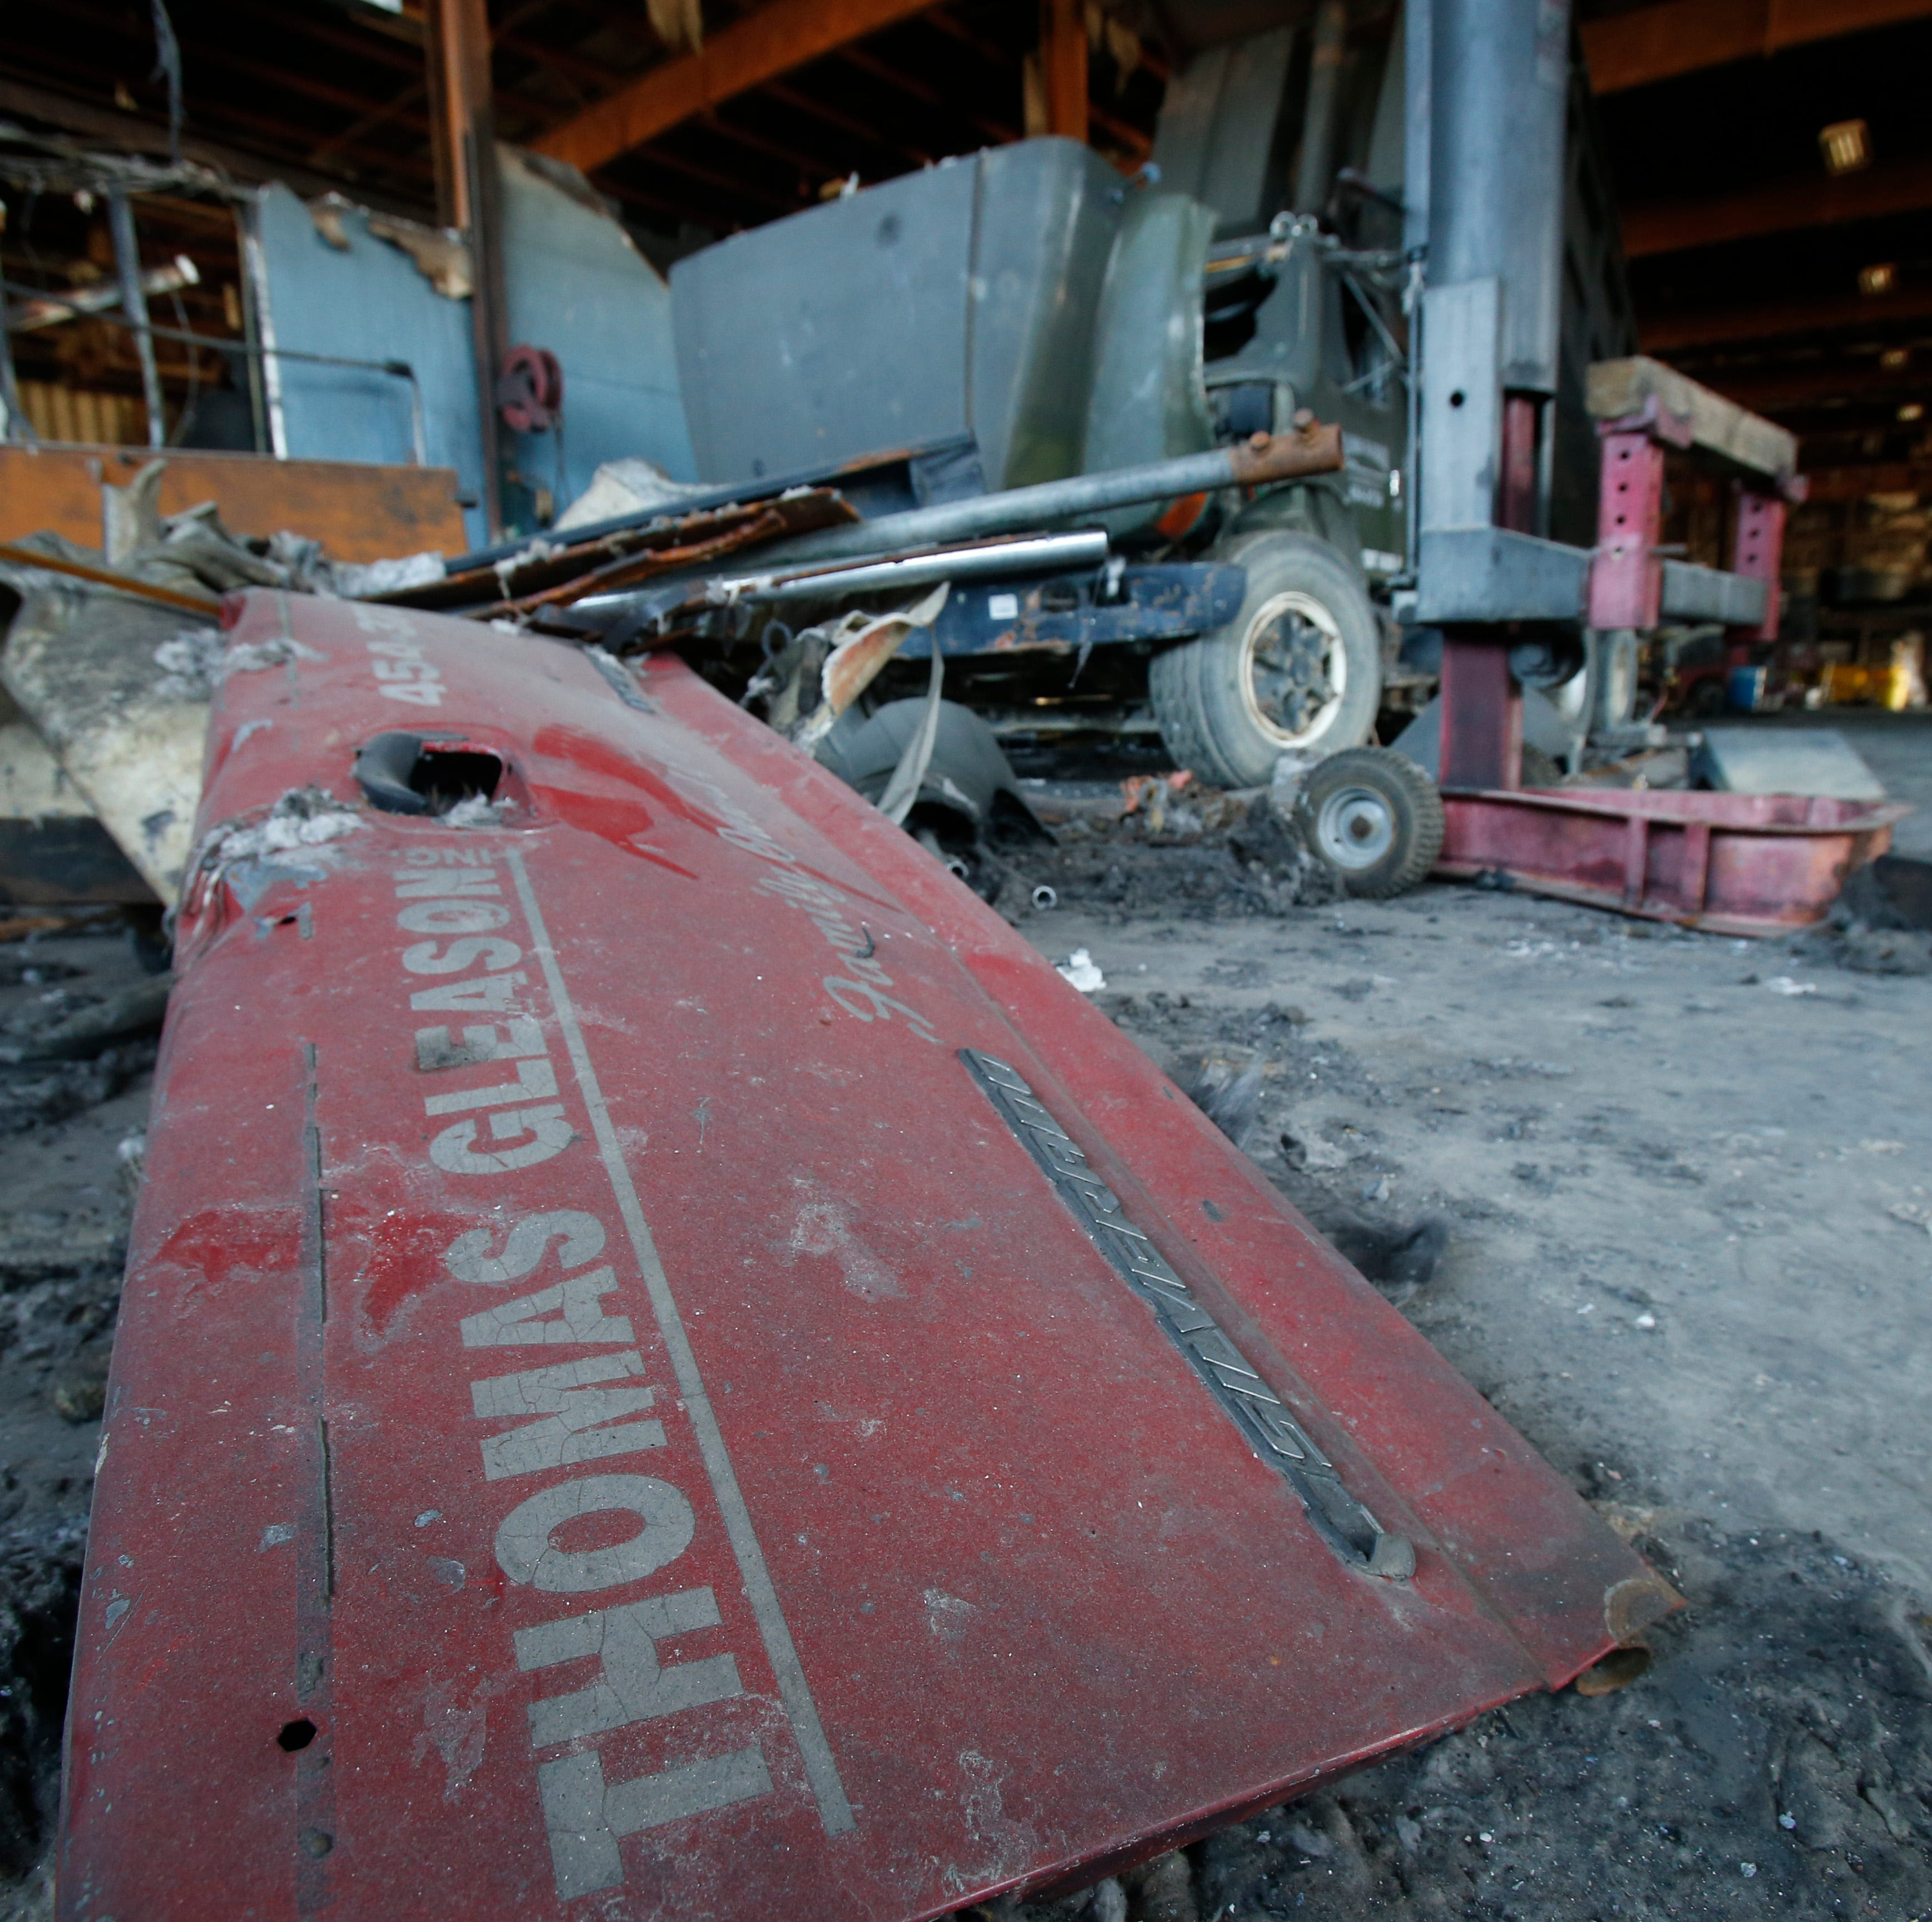 'You move forward:' Thomas Gleason excavation company recoups after devastating blaze